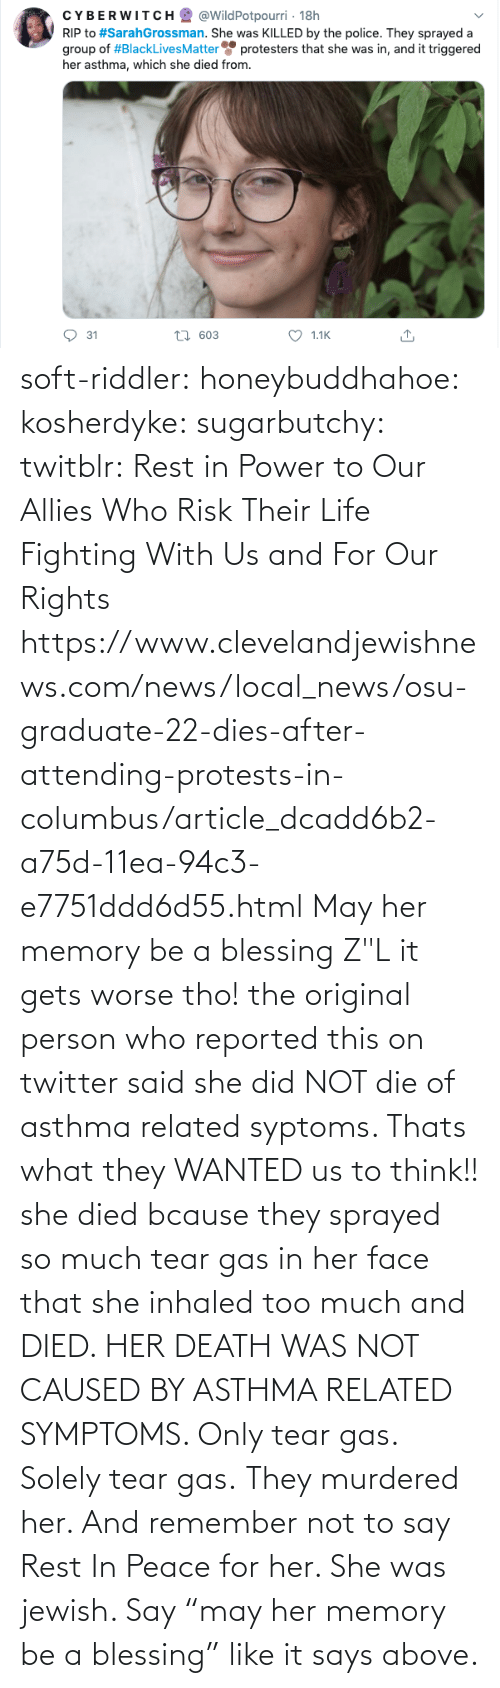 "did: soft-riddler:  honeybuddhahoe:  kosherdyke:  sugarbutchy:  twitblr: Rest in Power to Our Allies Who Risk Their Life Fighting With Us and For Our Rights https://www.clevelandjewishnews.com/news/local_news/osu-graduate-22-dies-after-attending-protests-in-columbus/article_dcadd6b2-a75d-11ea-94c3-e7751ddd6d55.html    May her memory be a blessing Z""L  it gets worse tho! the original person who reported this on twitter said she did NOT die of asthma related syptoms. Thats what they WANTED us to think!! she died bcause they sprayed so much tear gas in her face that she inhaled too much and DIED. HER DEATH WAS NOT CAUSED BY ASTHMA RELATED SYMPTOMS. Only tear gas. Solely tear gas. They murdered her.     And remember not to say Rest In Peace for her. She was jewish. Say ""may her memory be a blessing"" like it says above."